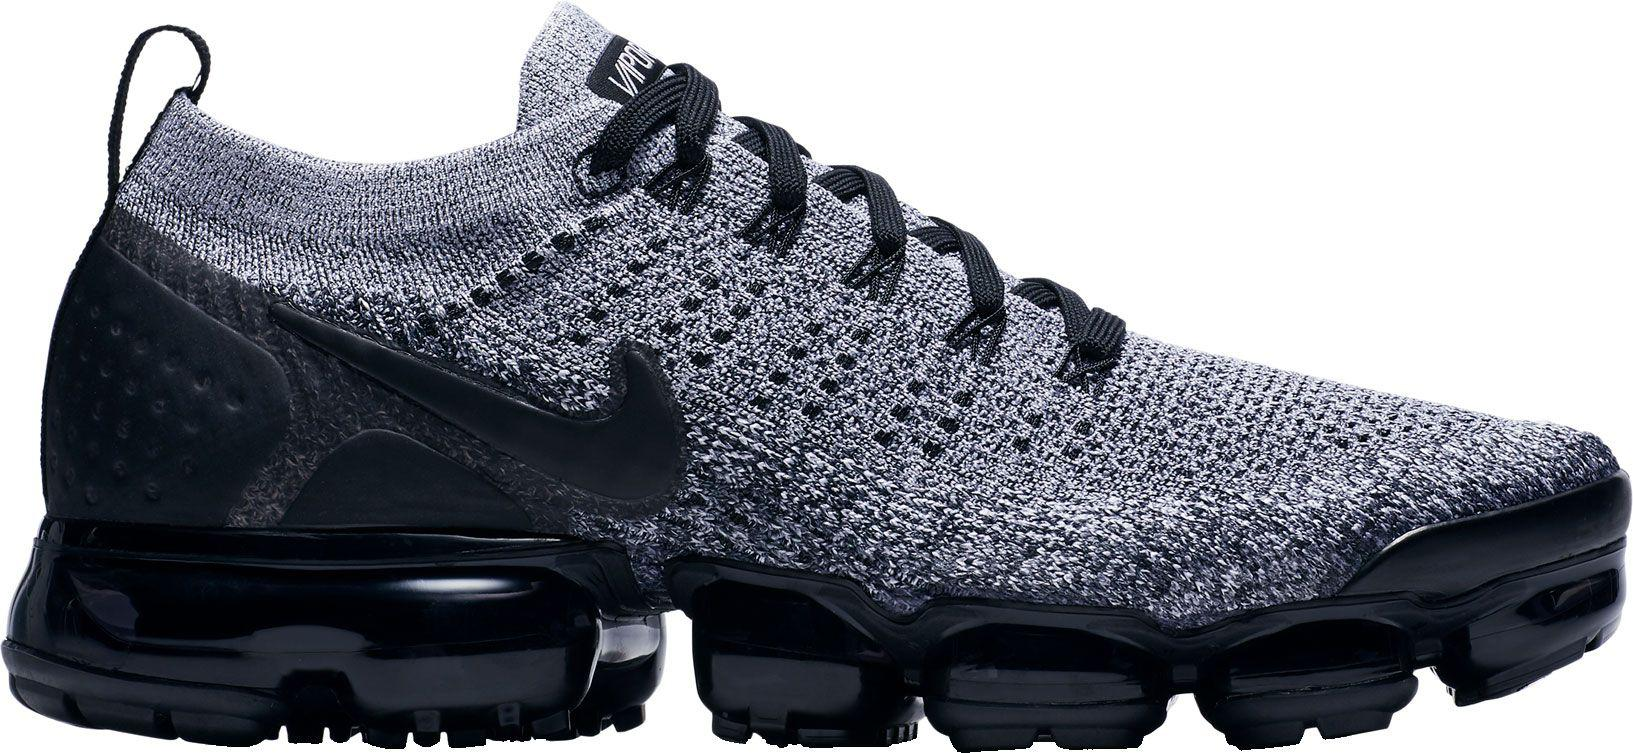 aef5fa7902 Nike Air Vapormax Flyknit 2 Running Shoes in Black for Men - Lyst